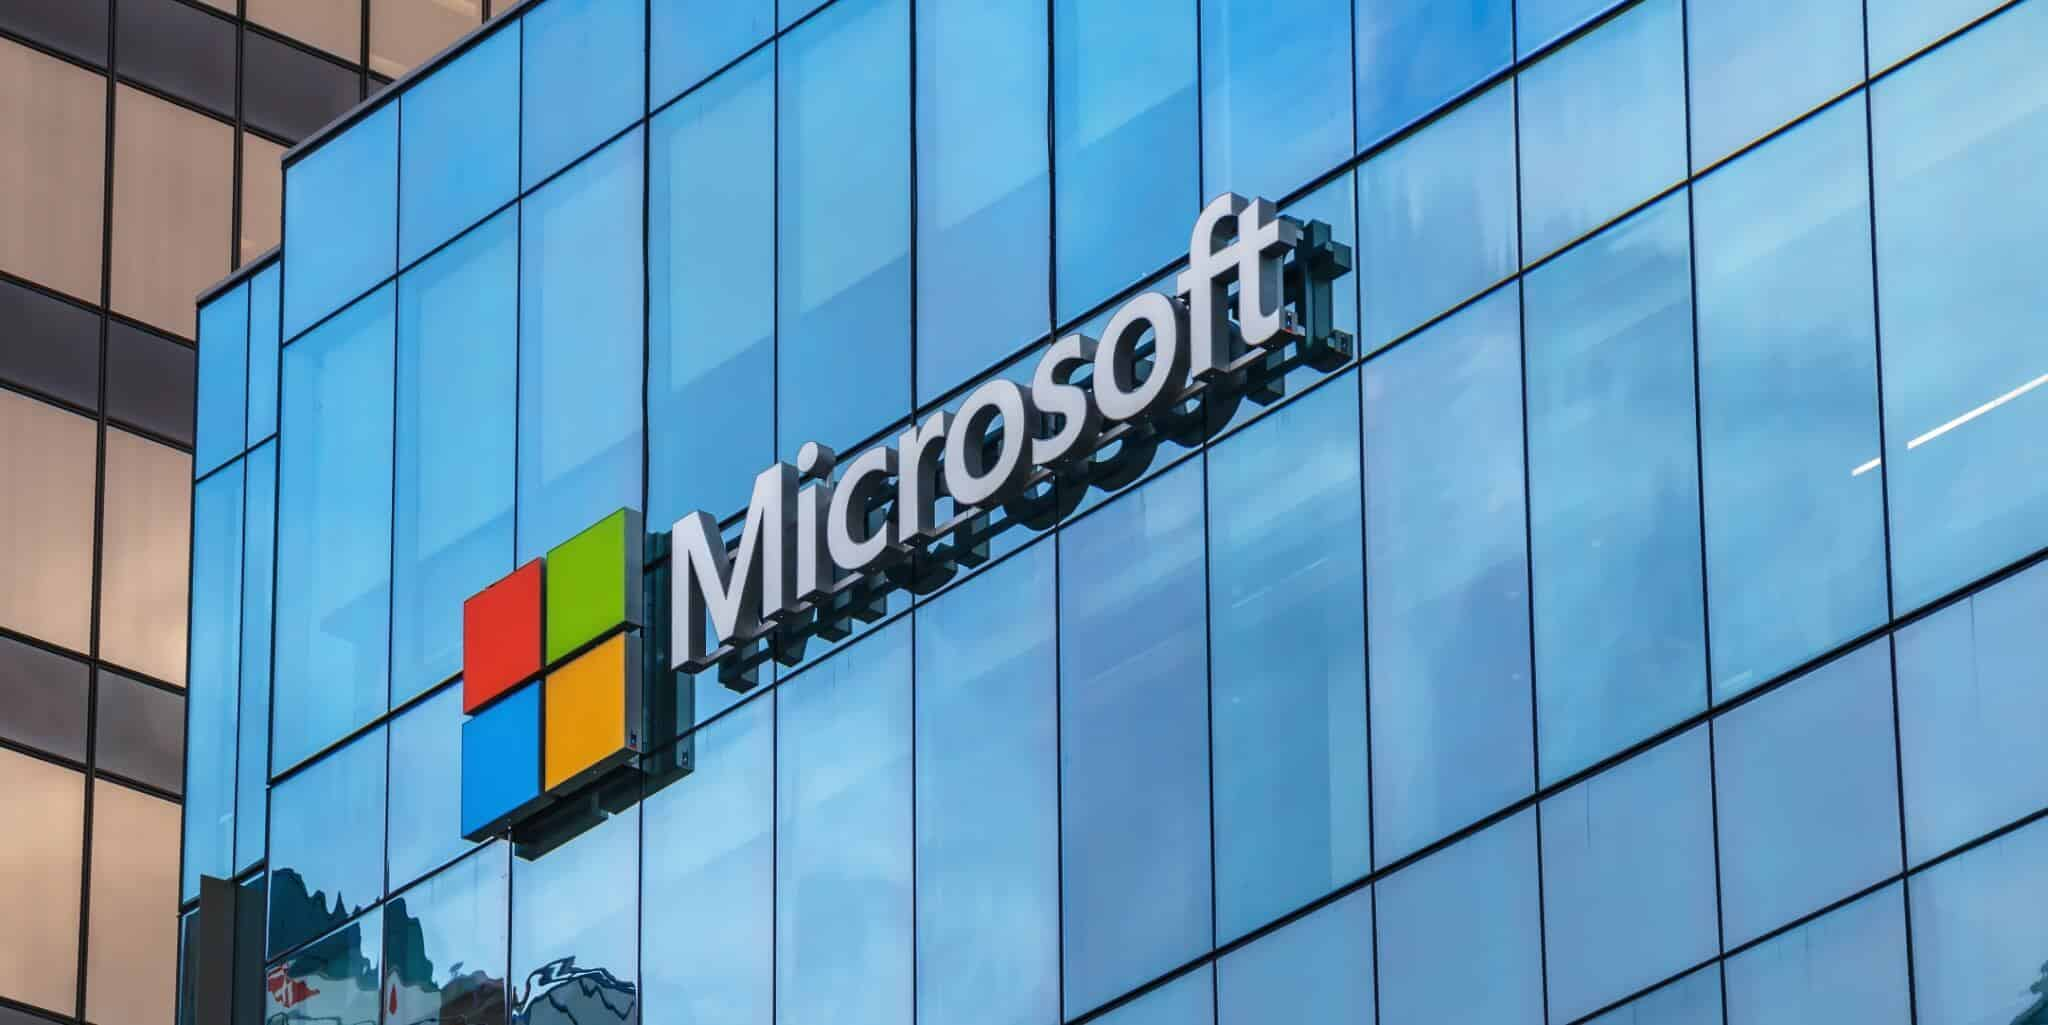 Software giant Microsoft to let employees work from home permanently. 4